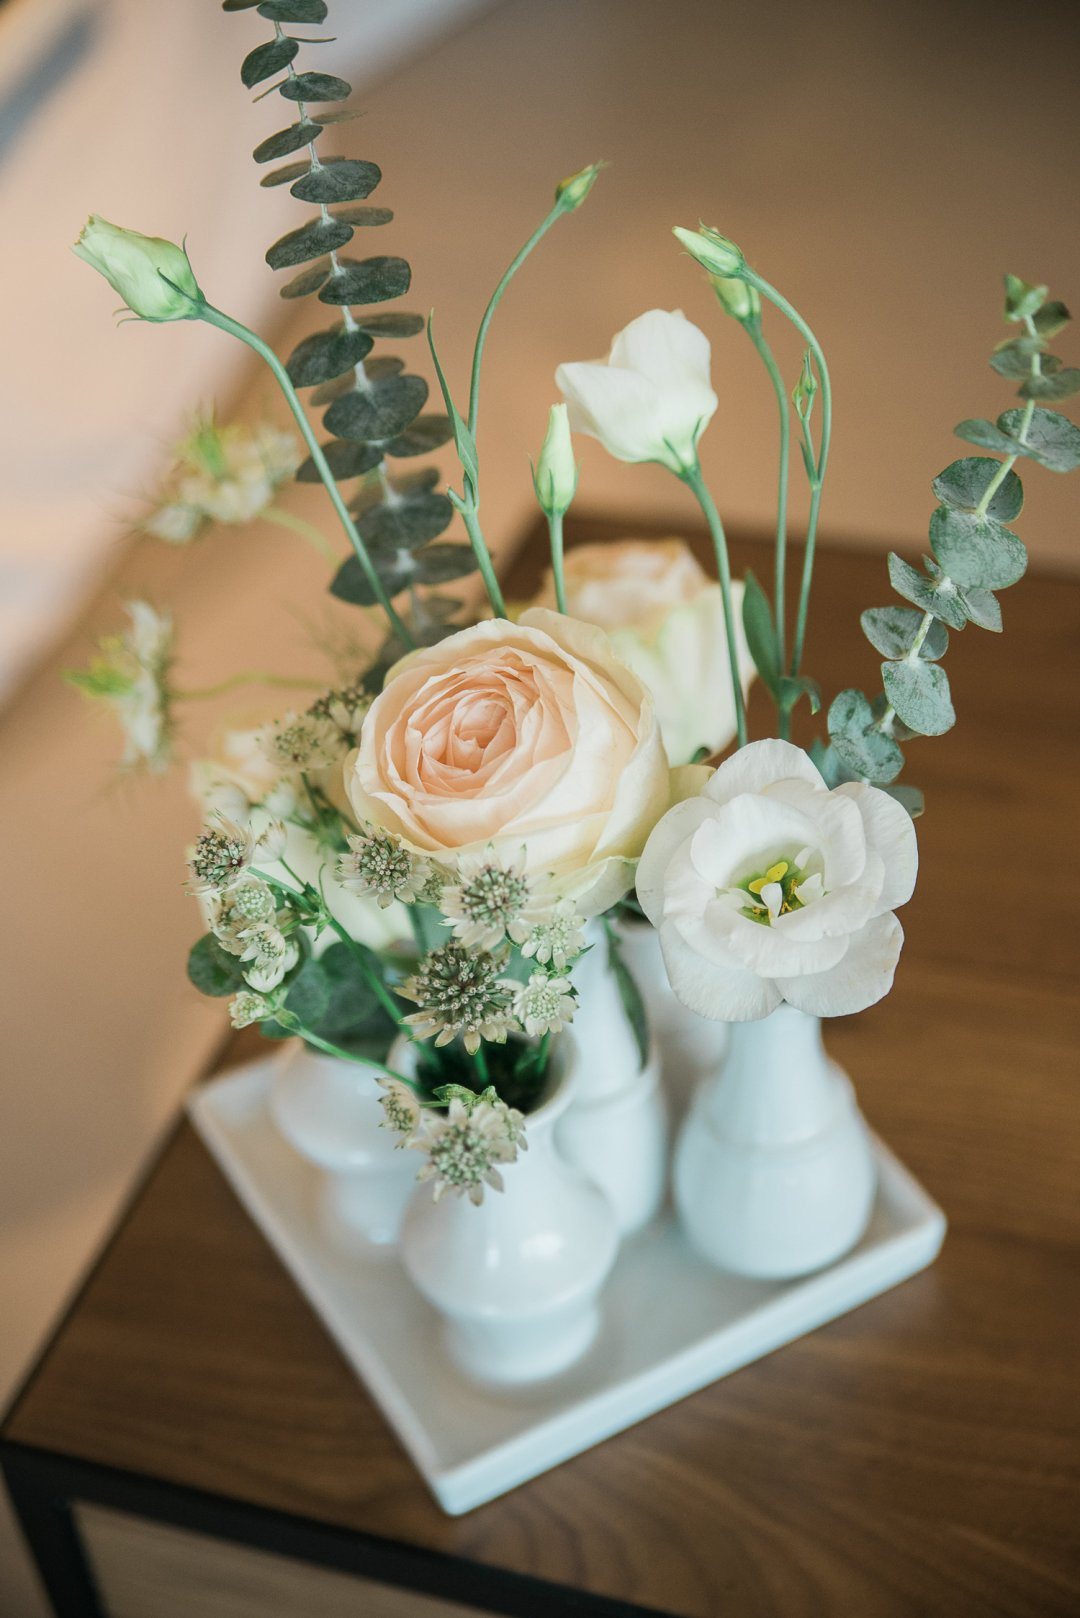 Collection of white flowers in small white vases